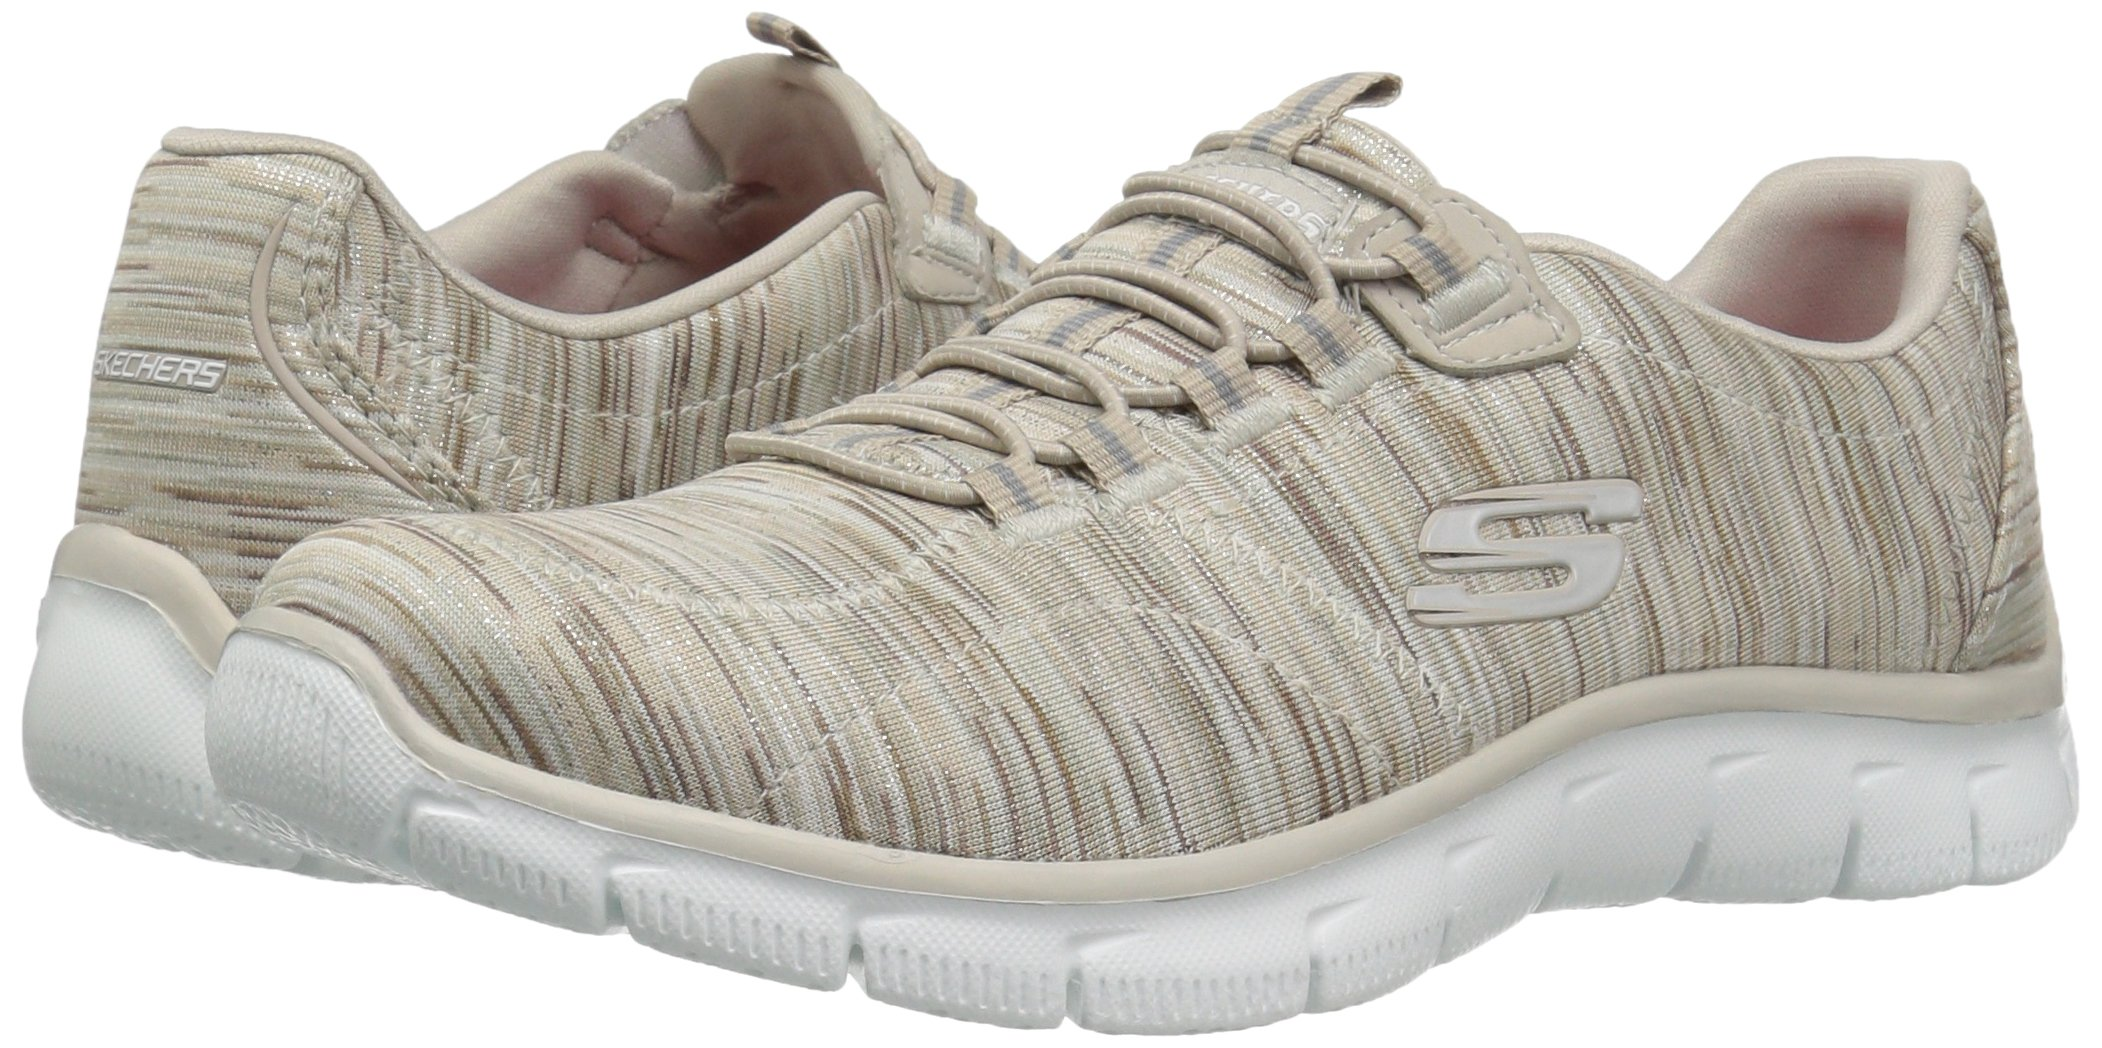 Skechers Women's Empire Game On Memory Foam Sneakers Shoes, Taupe, 6 B(M) US by Skechers (Image #6)